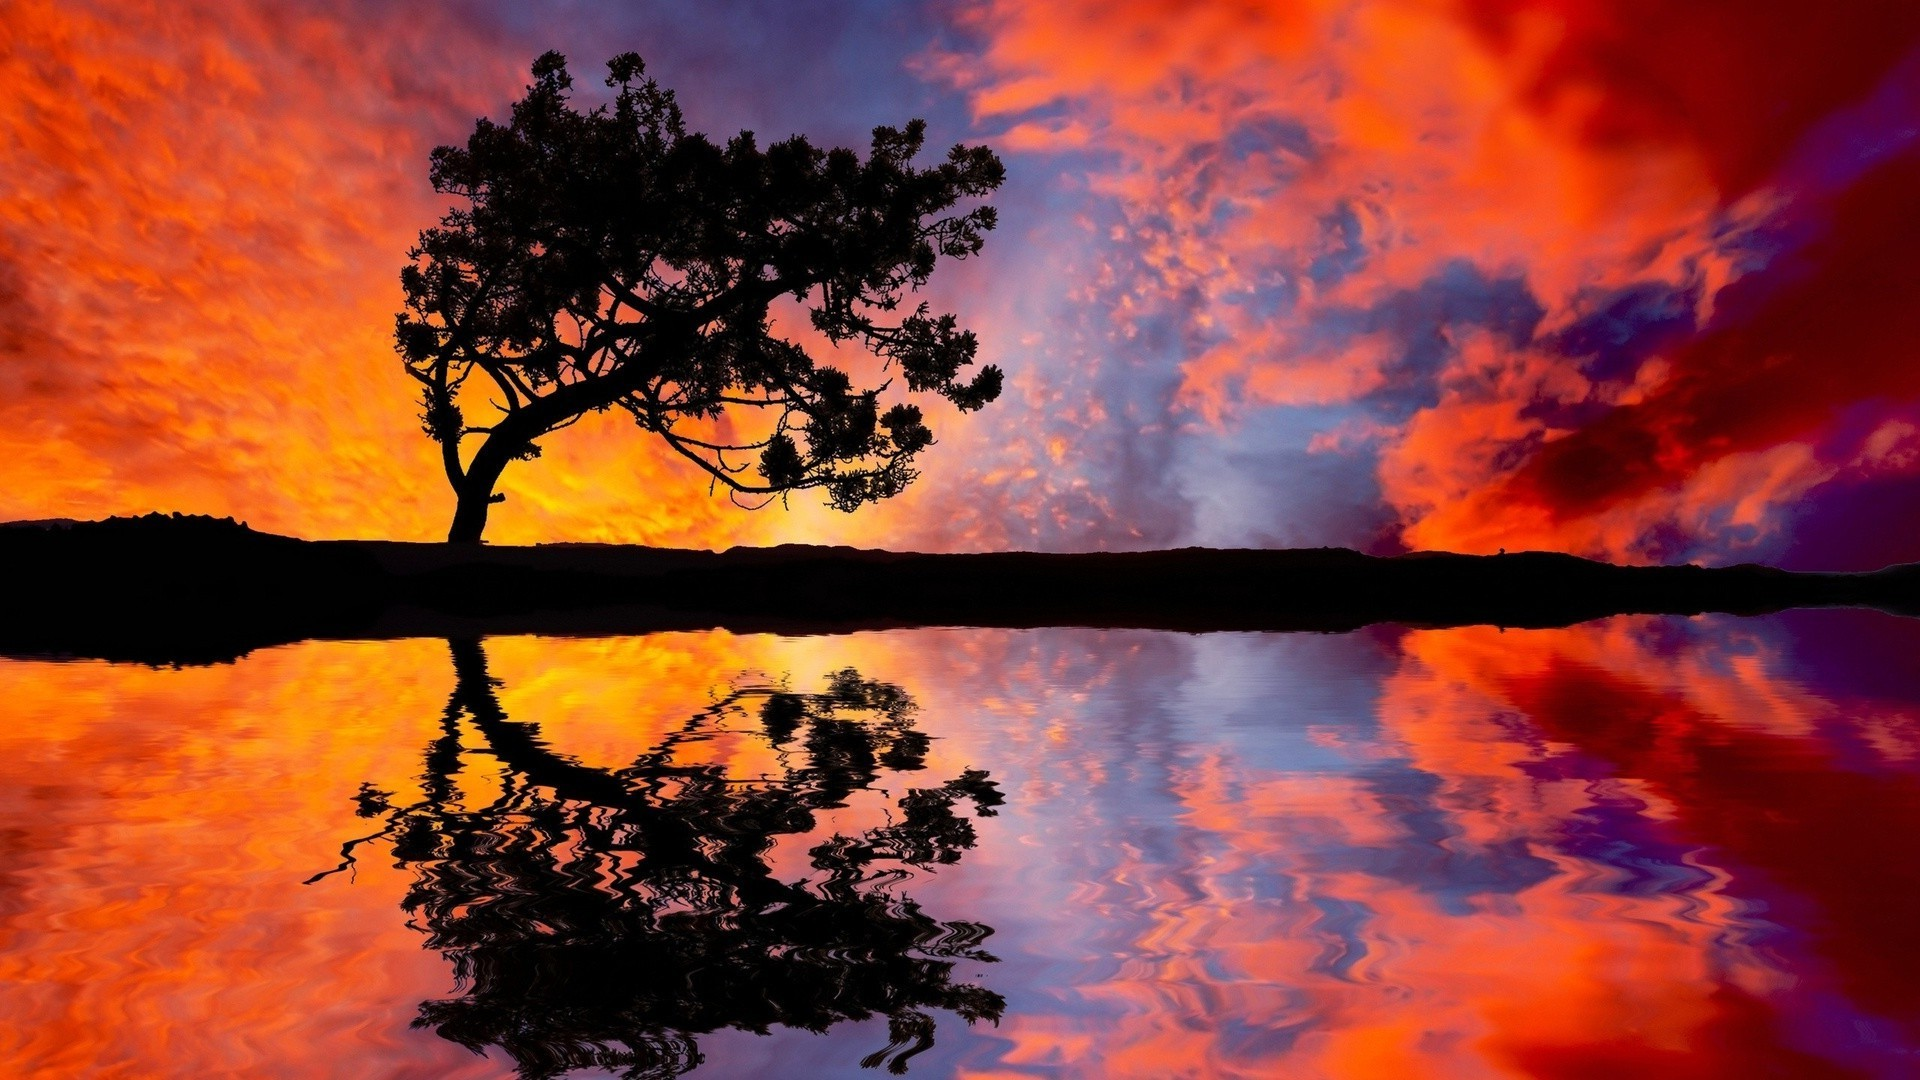 the sunset and sunrise sunset dawn landscape evening sun silhouette tree sky backlit nature scenic fair weather dusk fall outdoors wood weather light